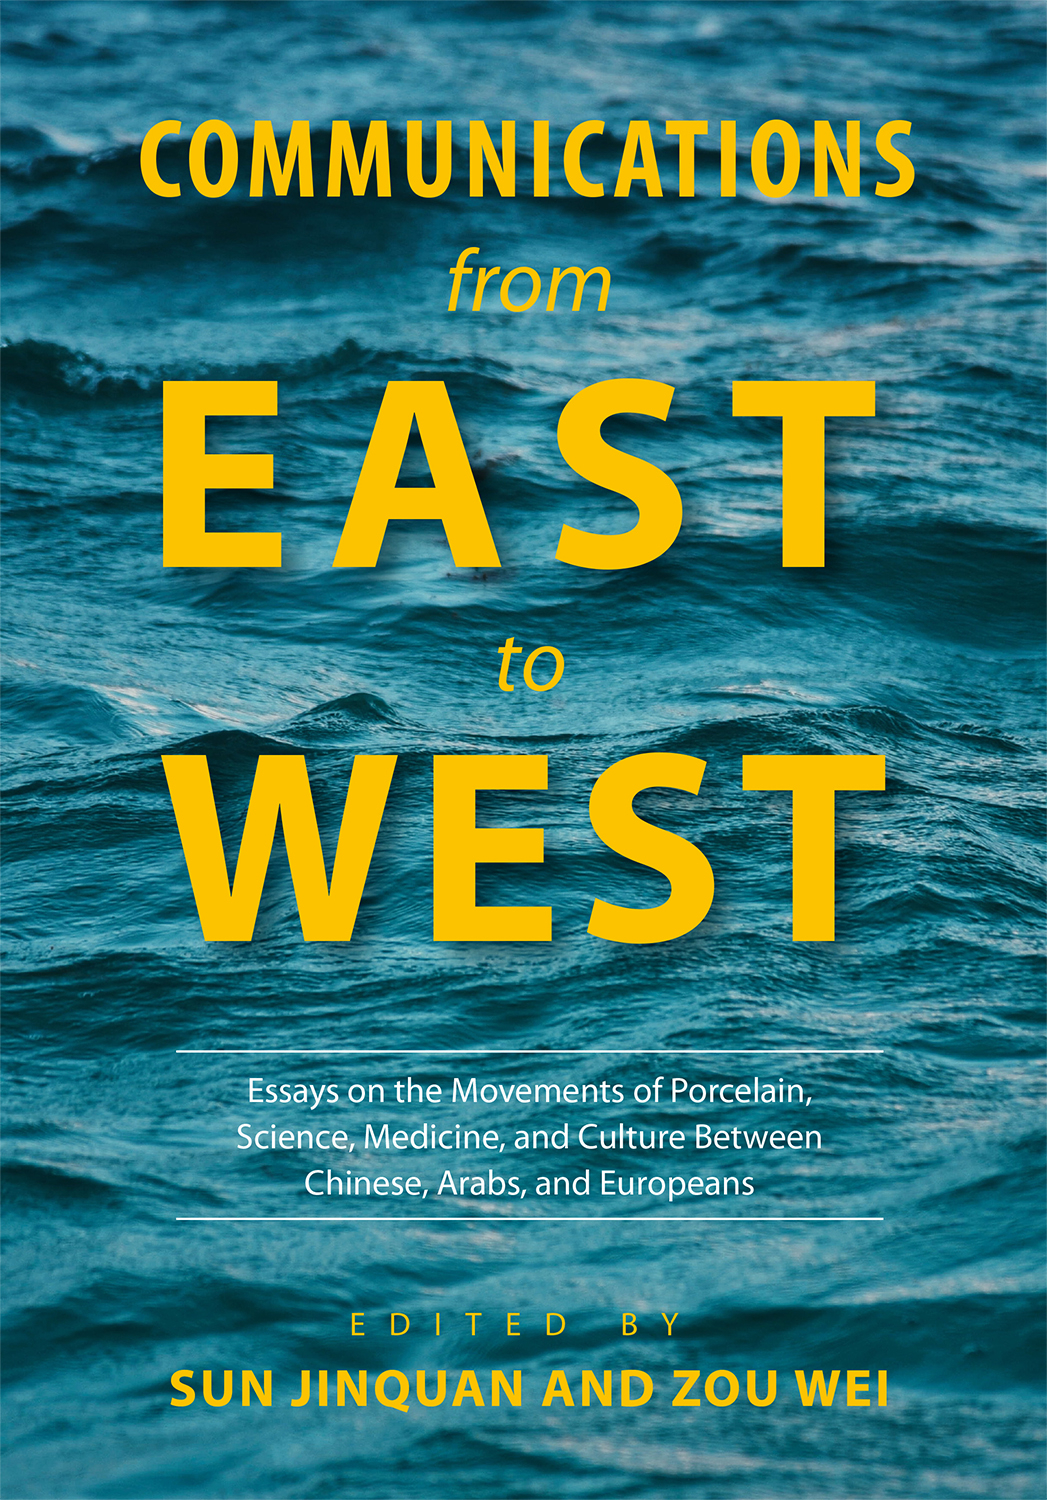 Communications from East to West